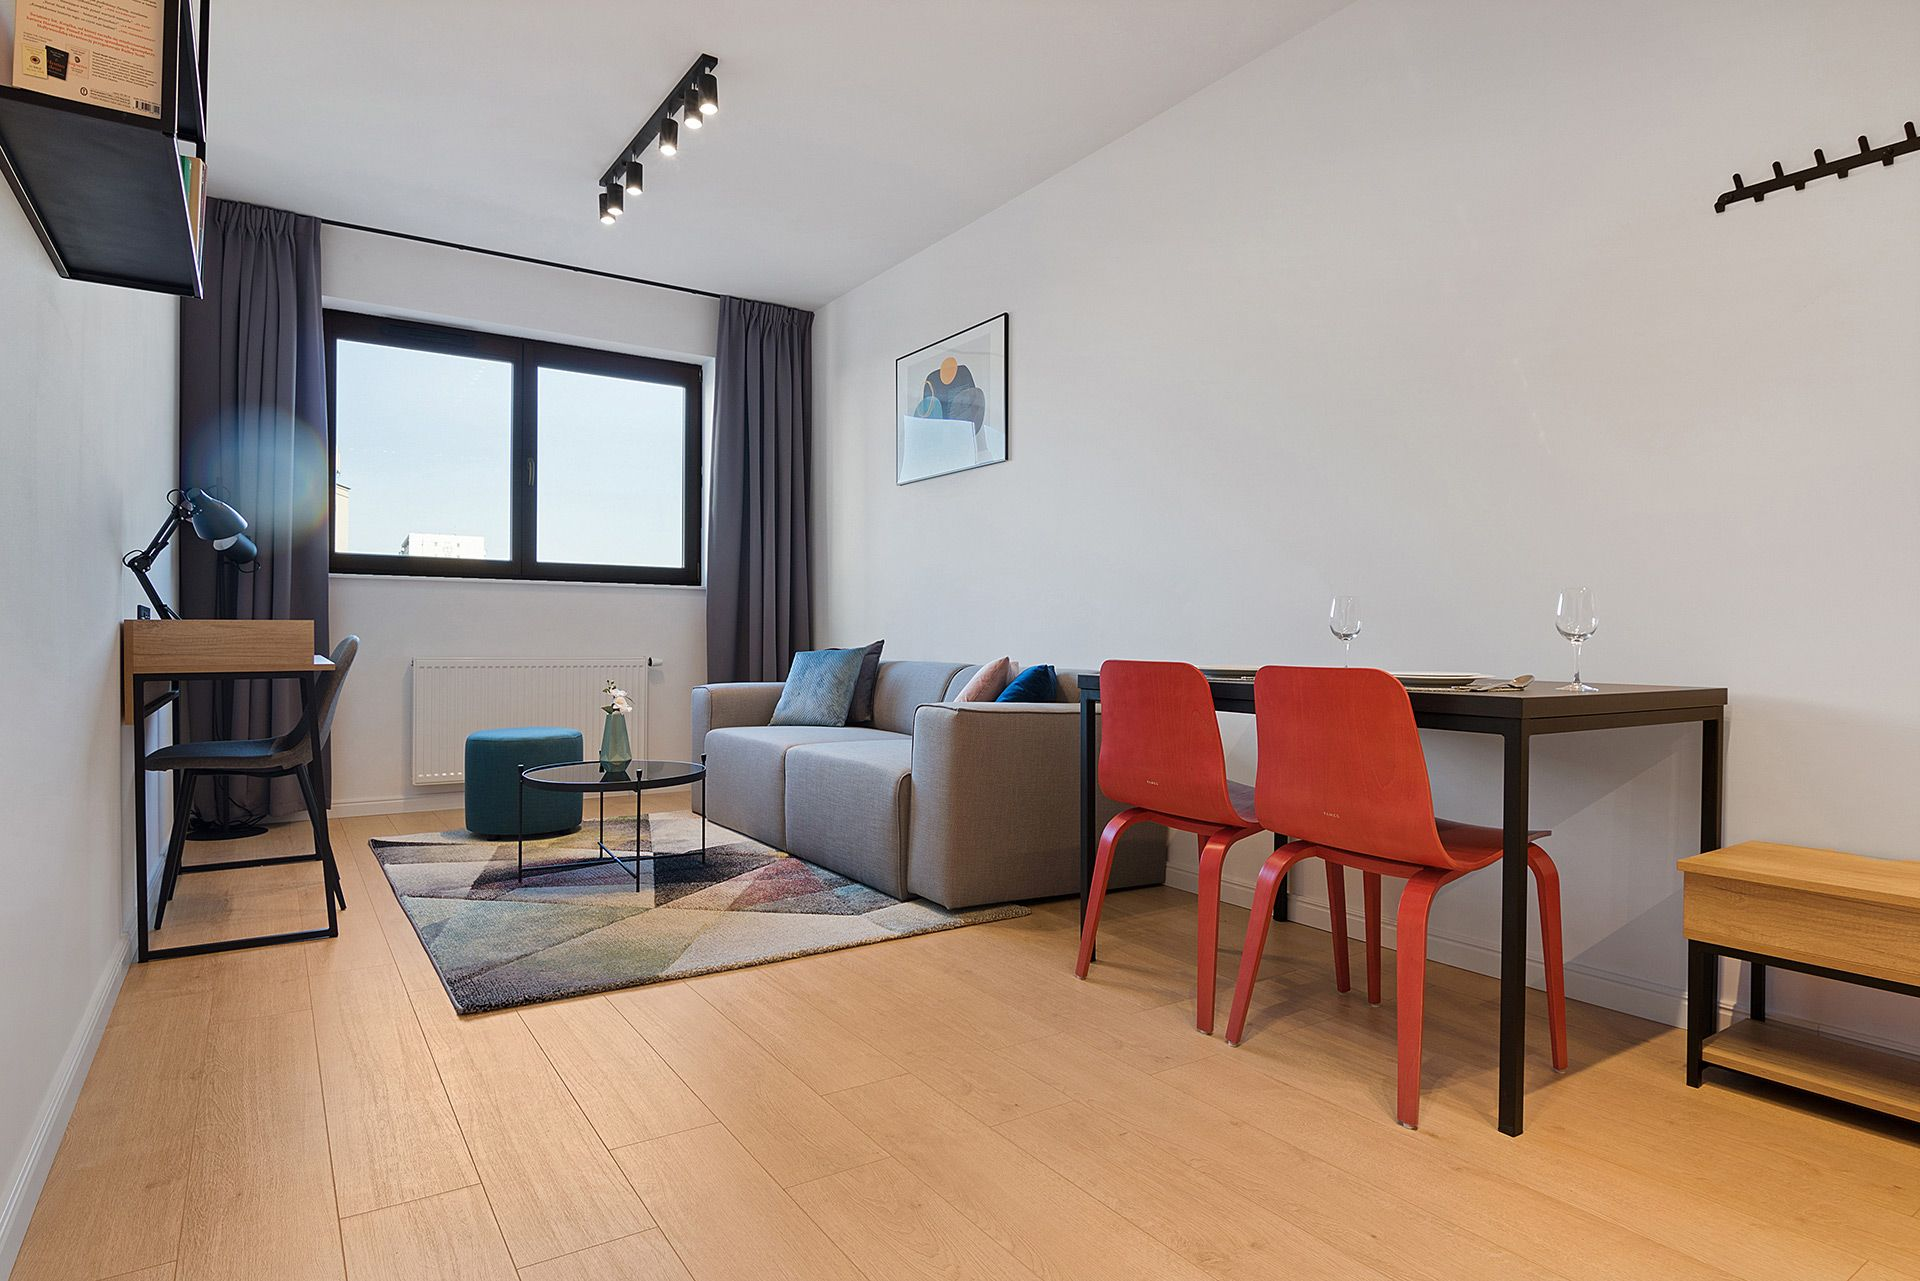 1 Bedroom - Medium apartment to rent in Warsaw UPR-A-044-2